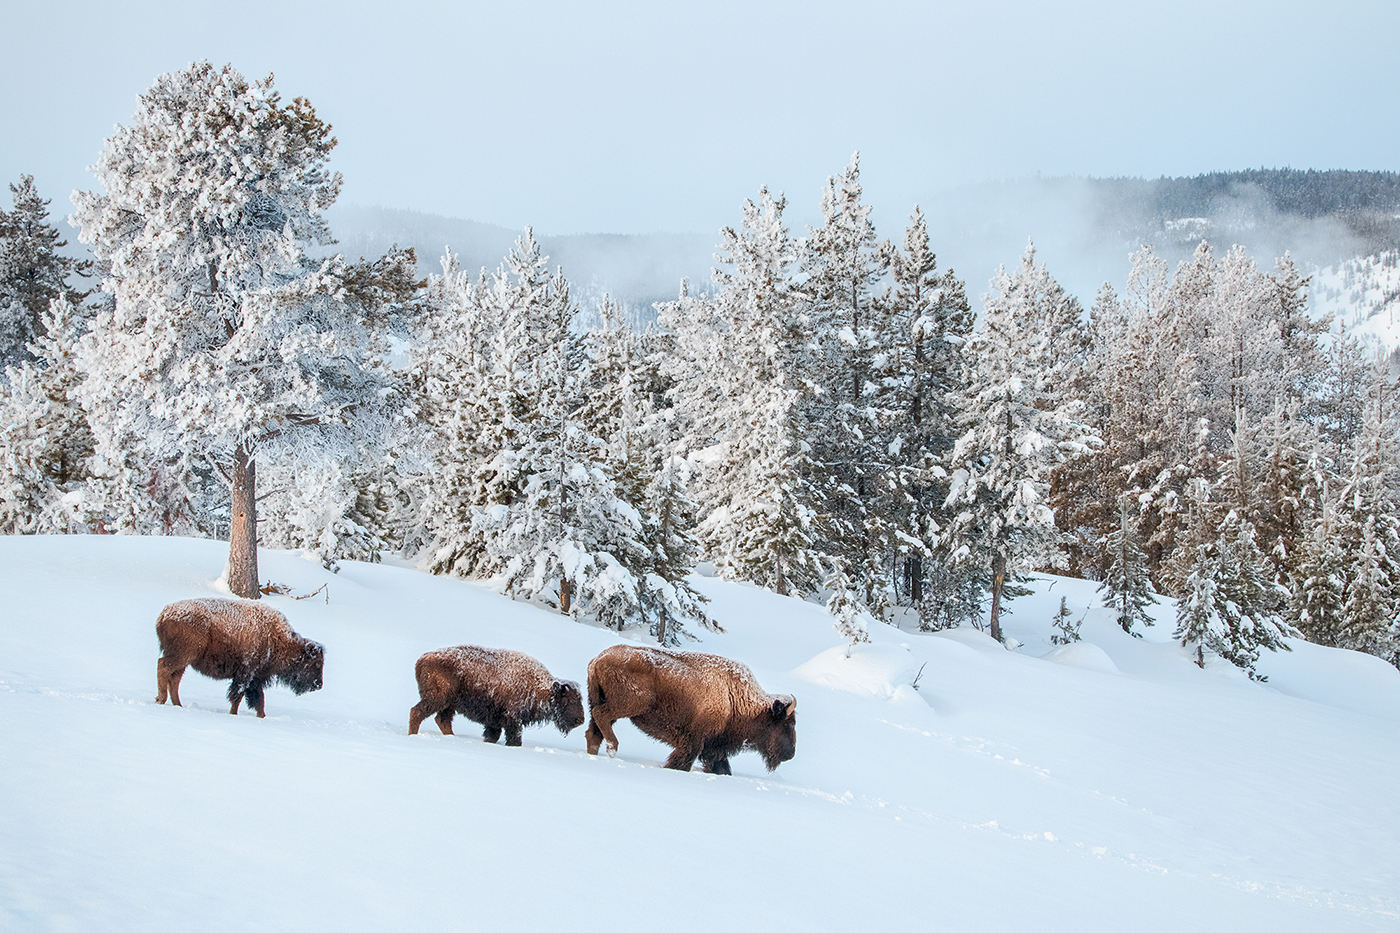 Bull and cows plow through the snow